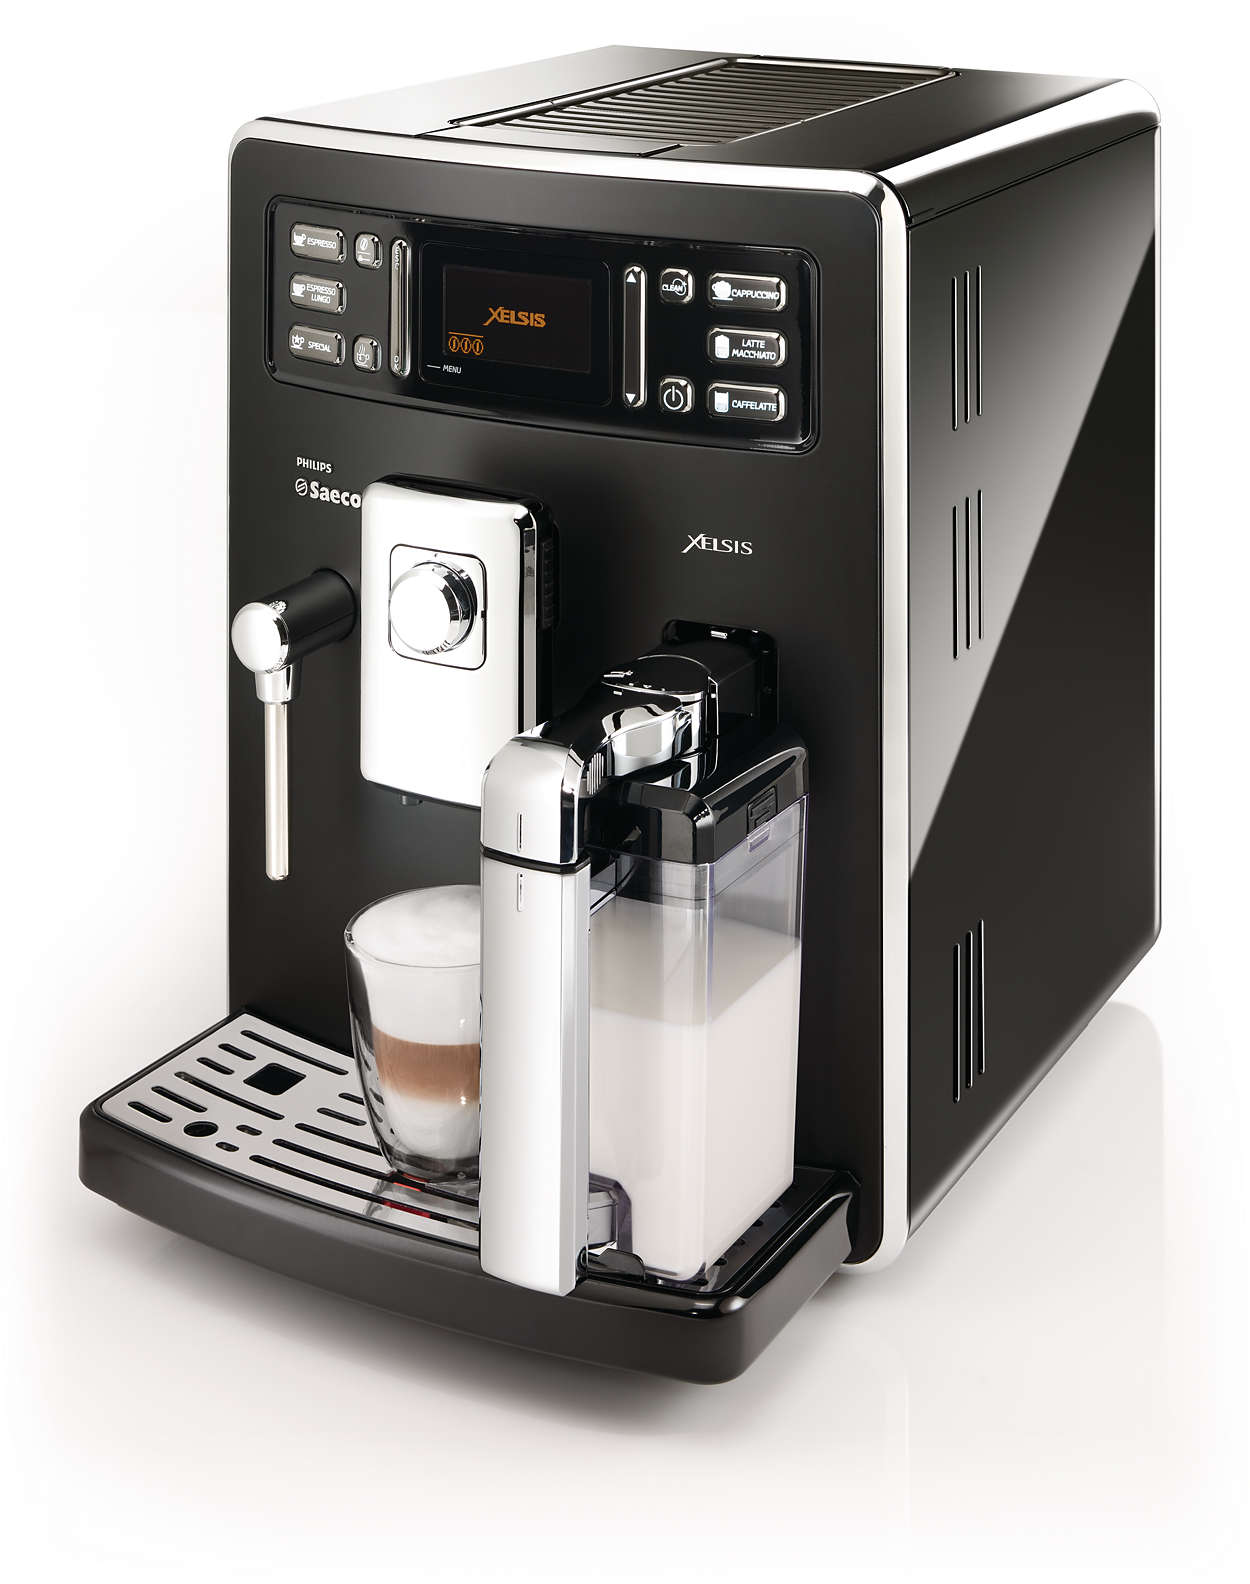 syntia super automatic espresso machine hd8942 12 saeco. Black Bedroom Furniture Sets. Home Design Ideas